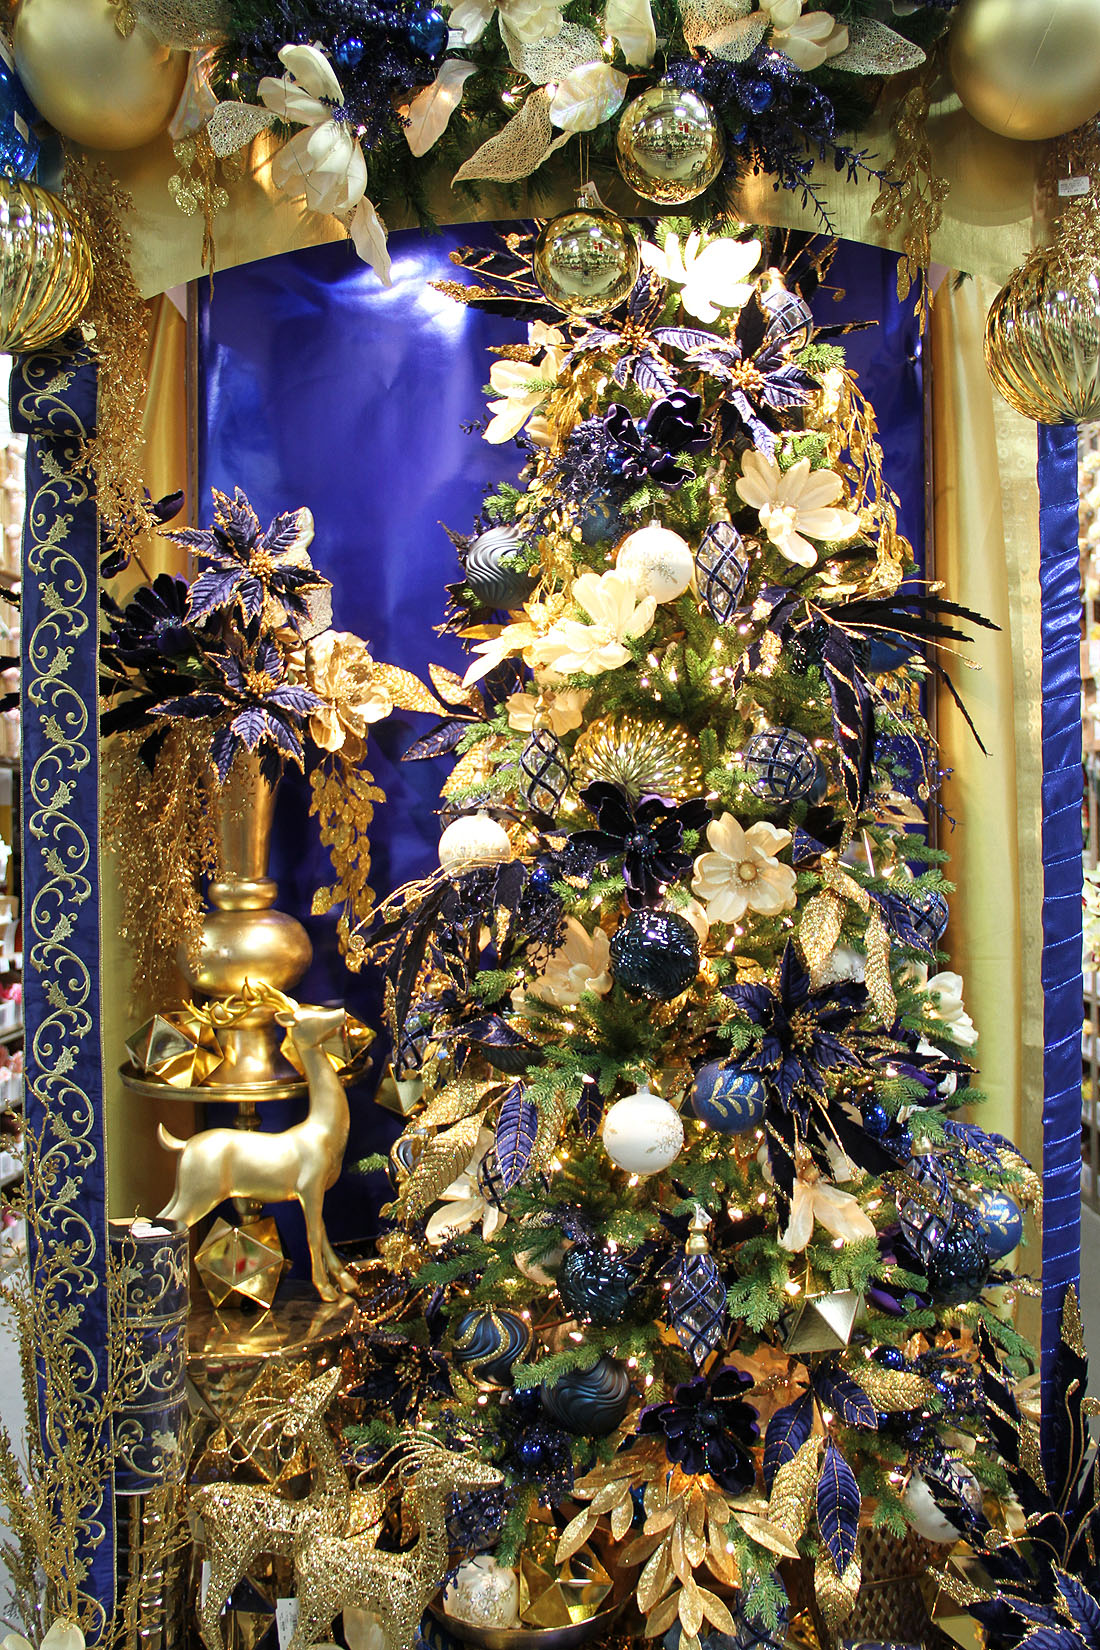 Golden Cobalt Blue Christmas Shinoda Design Center